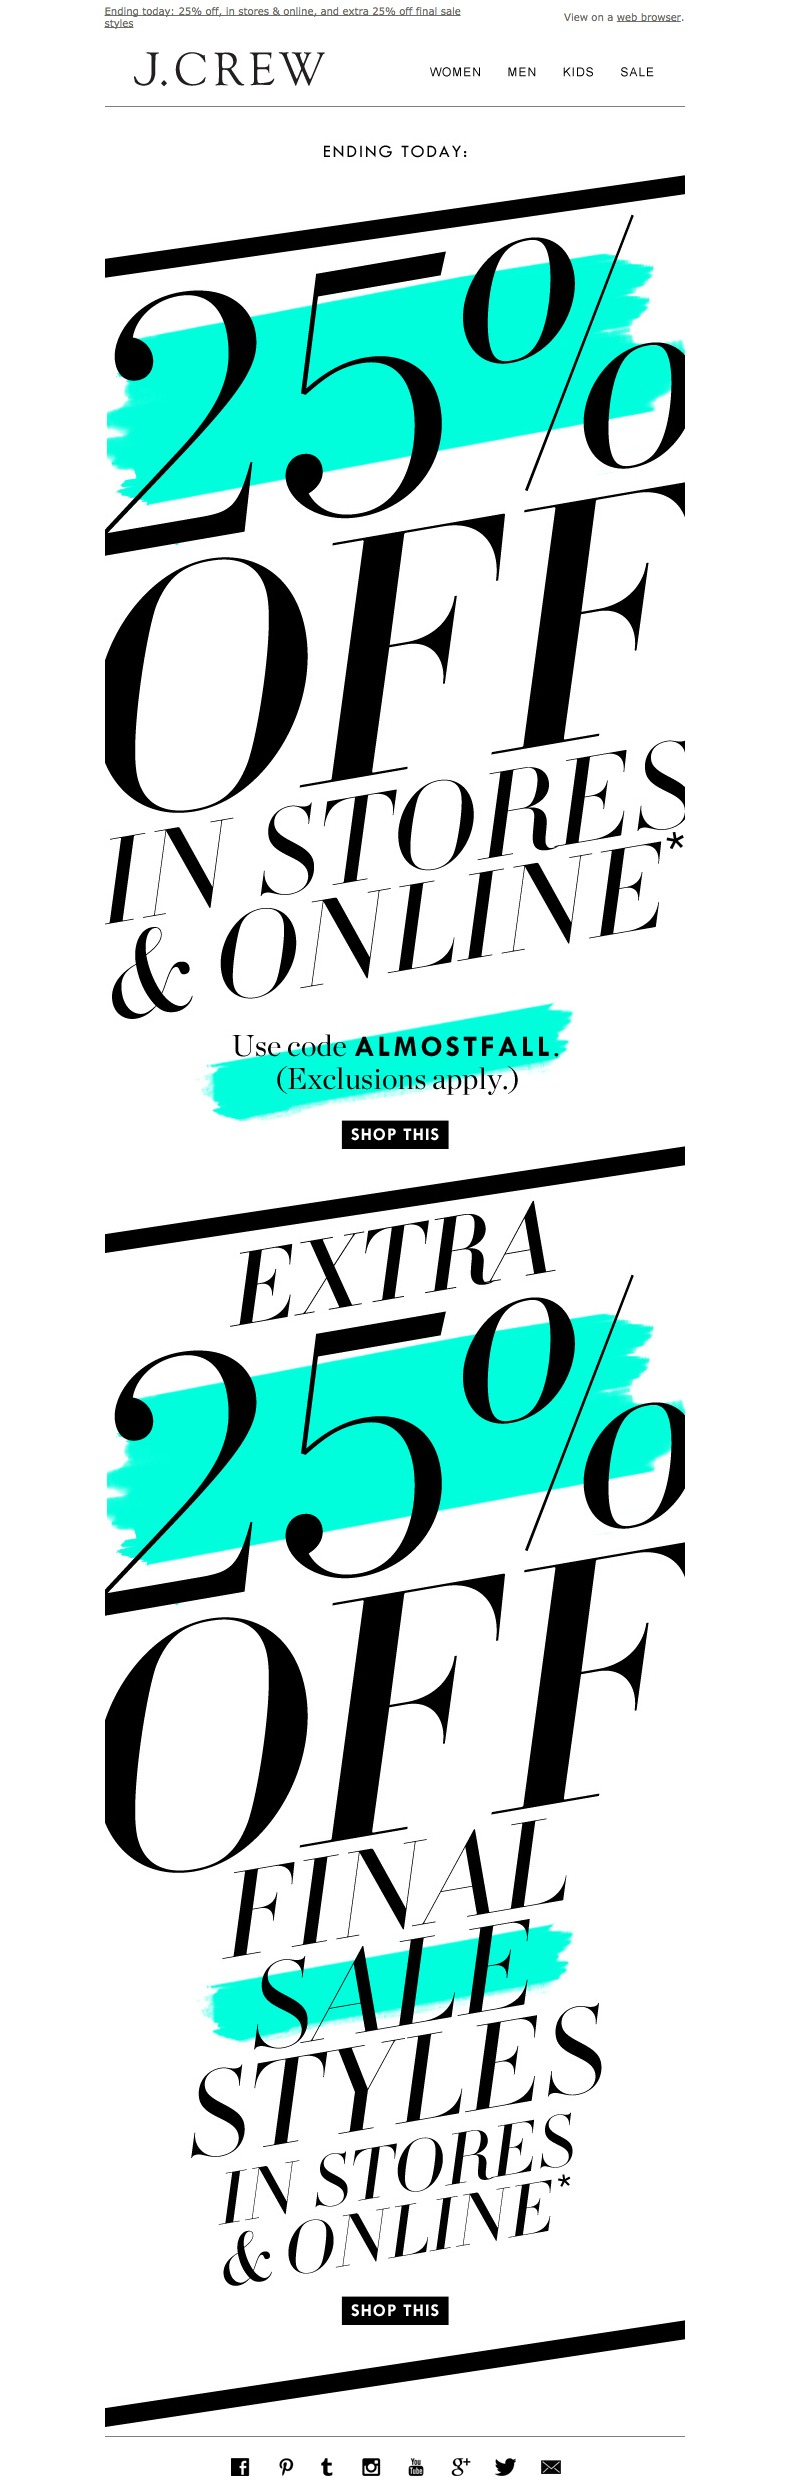 newsletter J.Crew 08.2014 The only thing these sales are